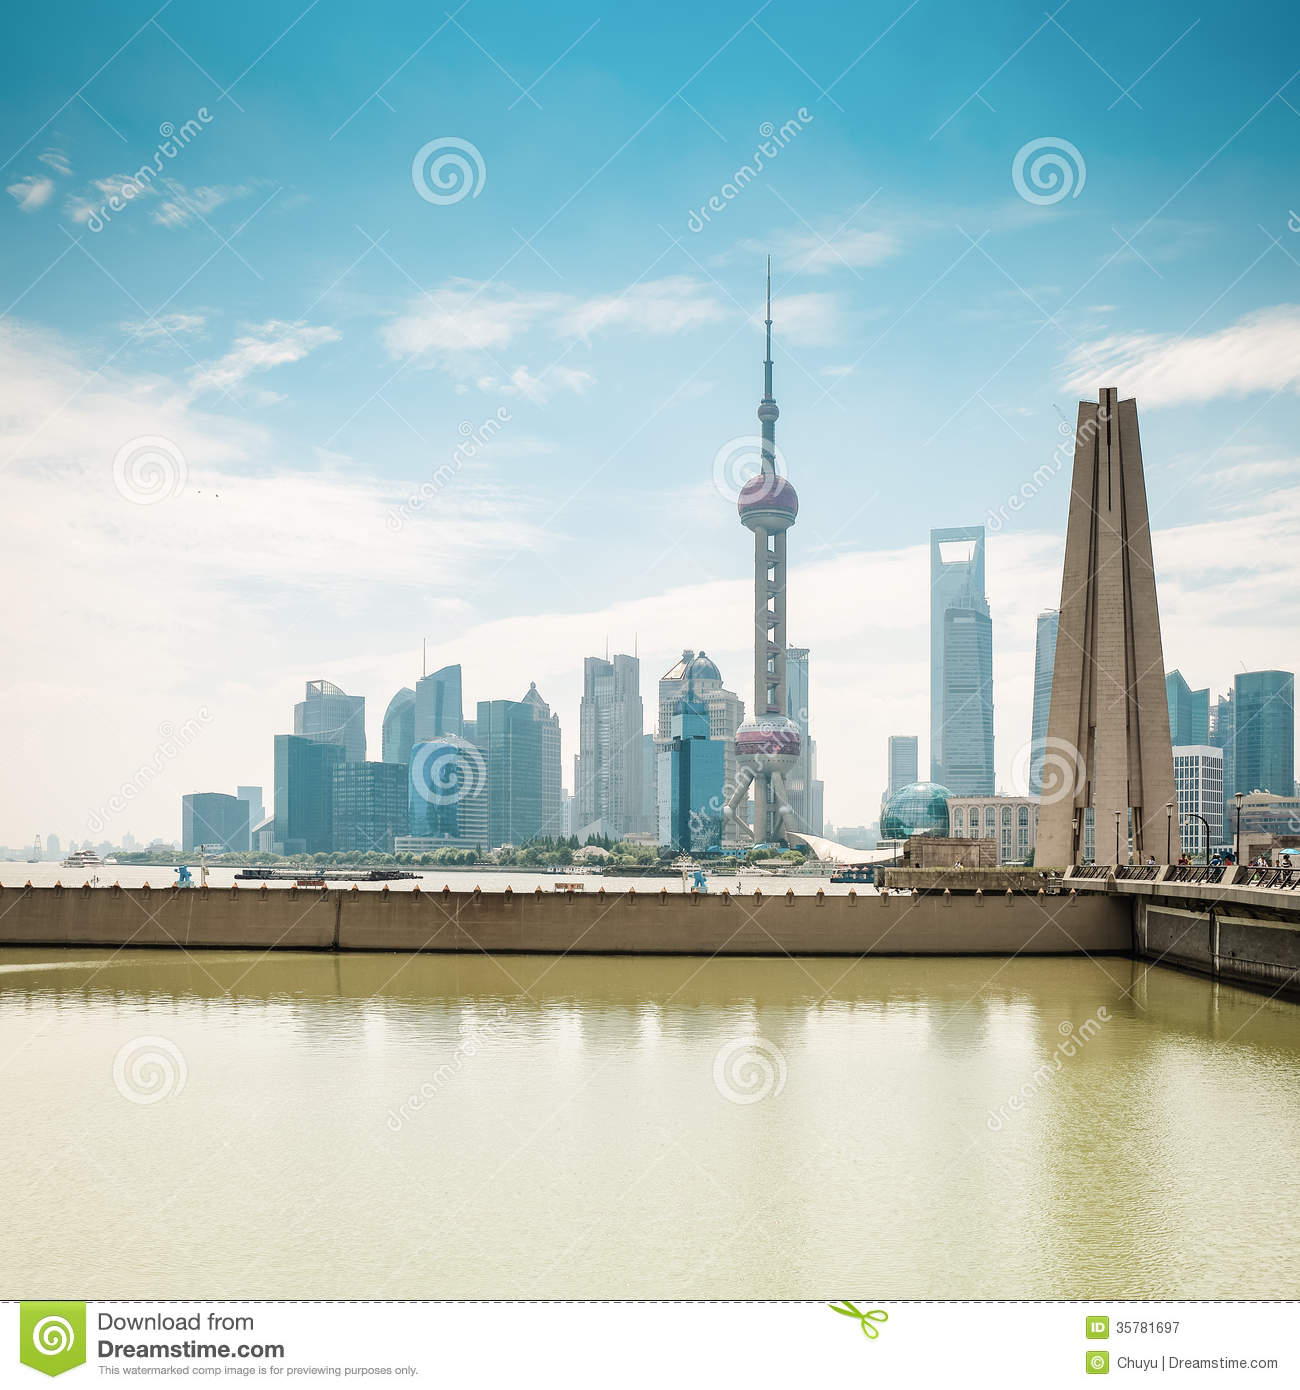 Shanghai pudong skyline in daytime with monument and suzhou river.